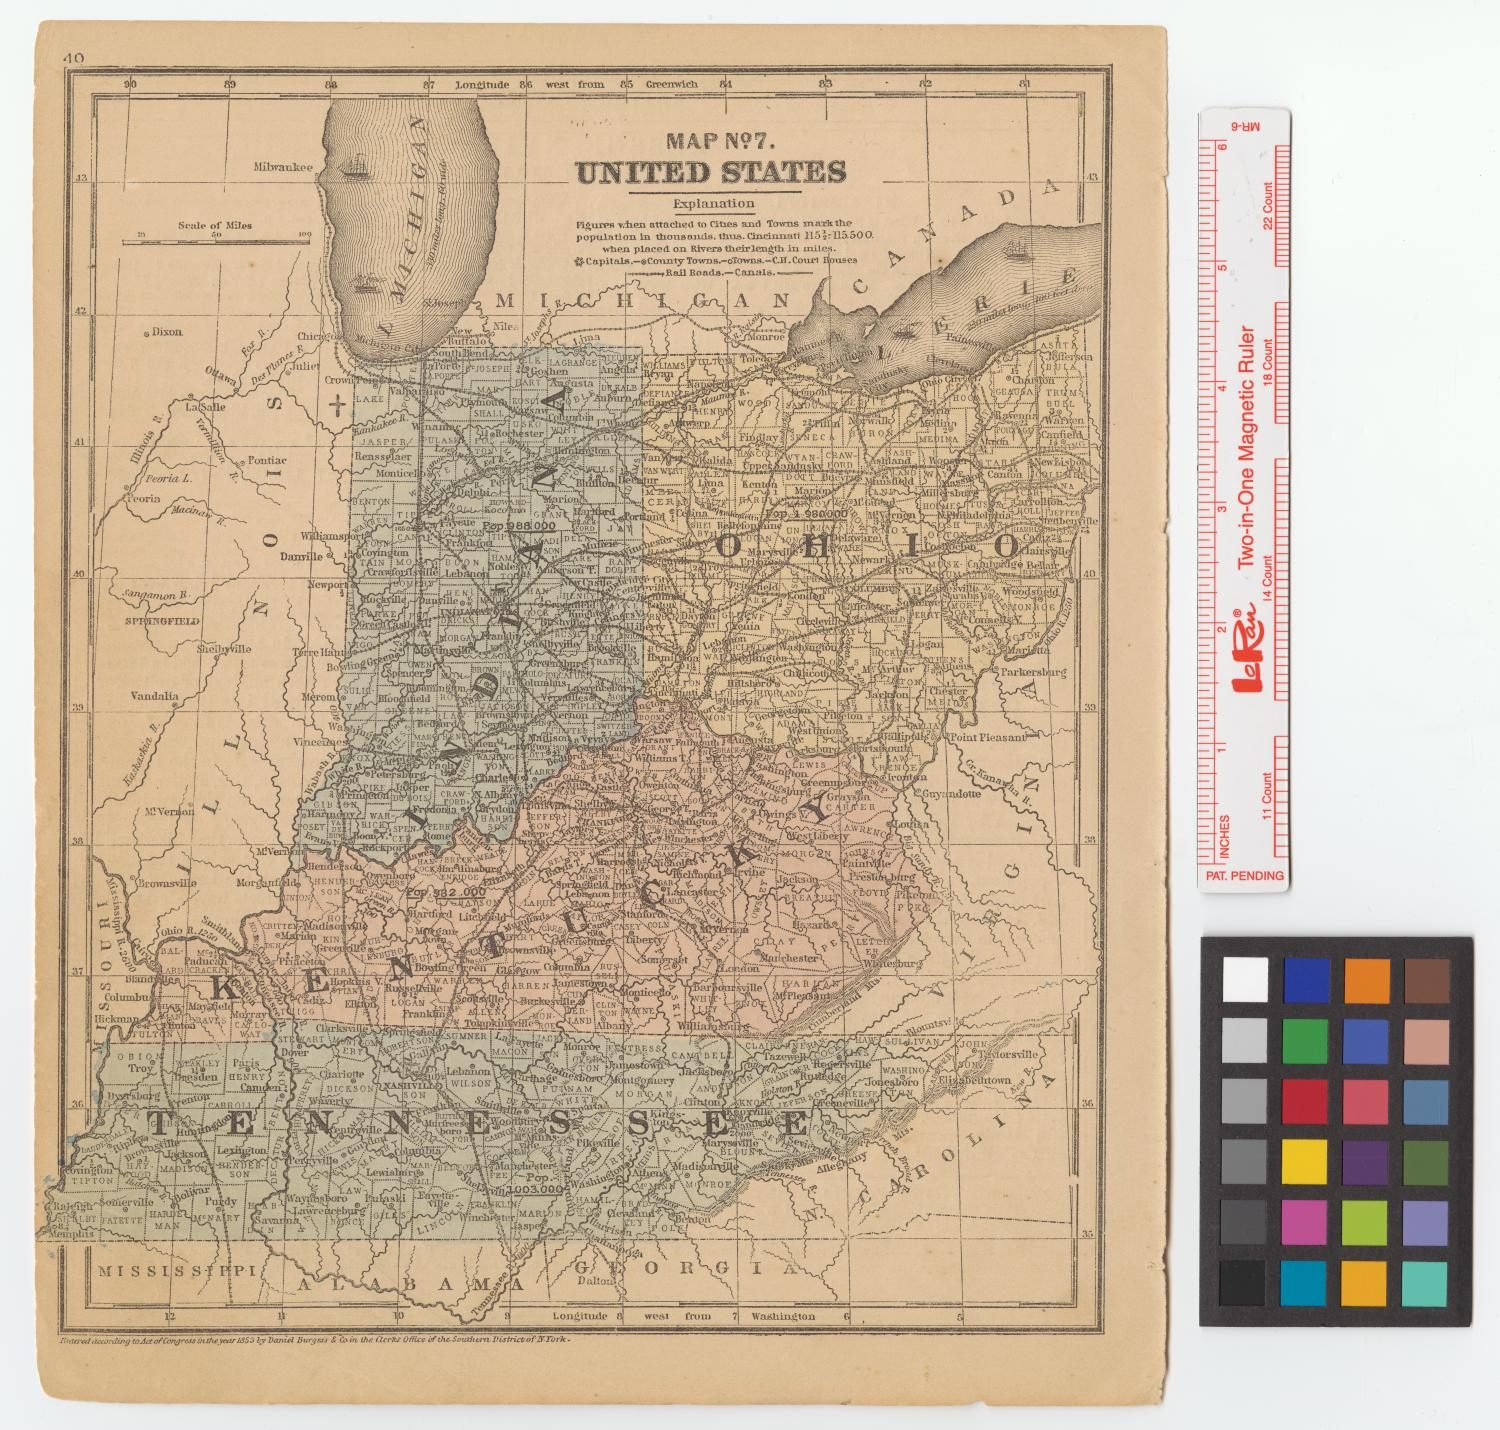 Map No. 7, United States.                                                                                                      [Sequence #]: 1 of 2